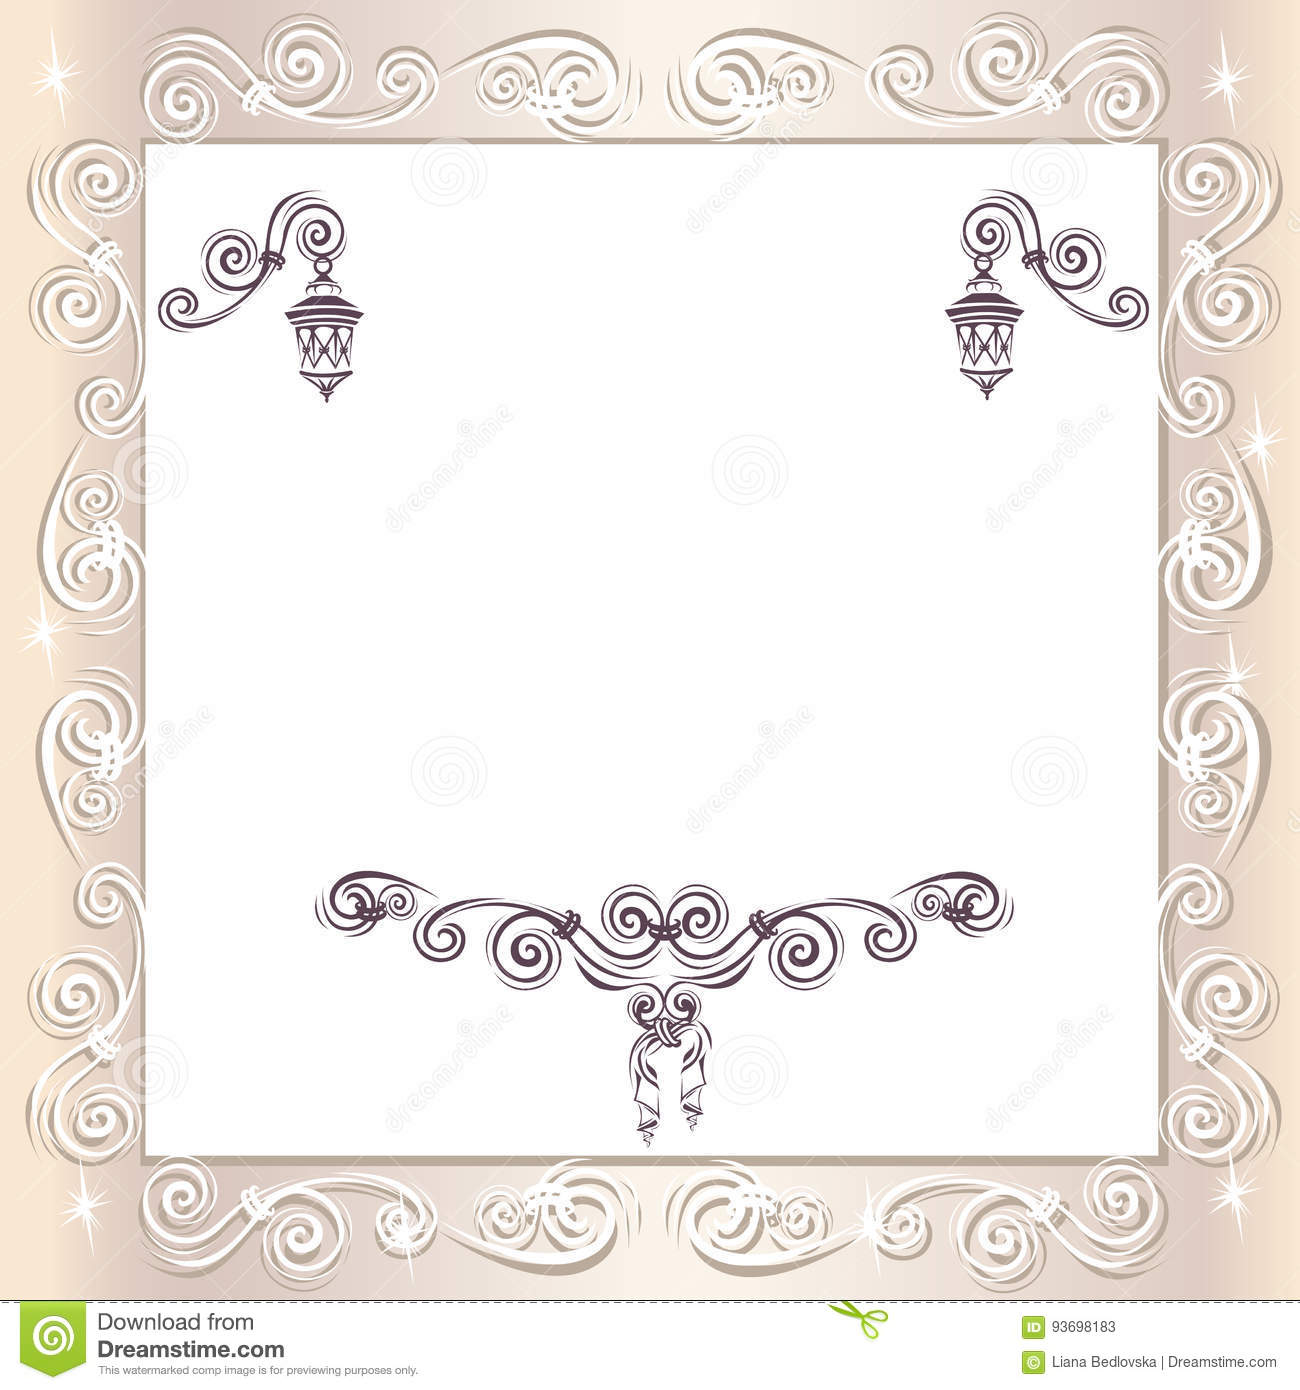 Vintage wedding frame stock vector illustration of decorative download vintage wedding frame stock vector illustration of decorative 93698183 junglespirit Images